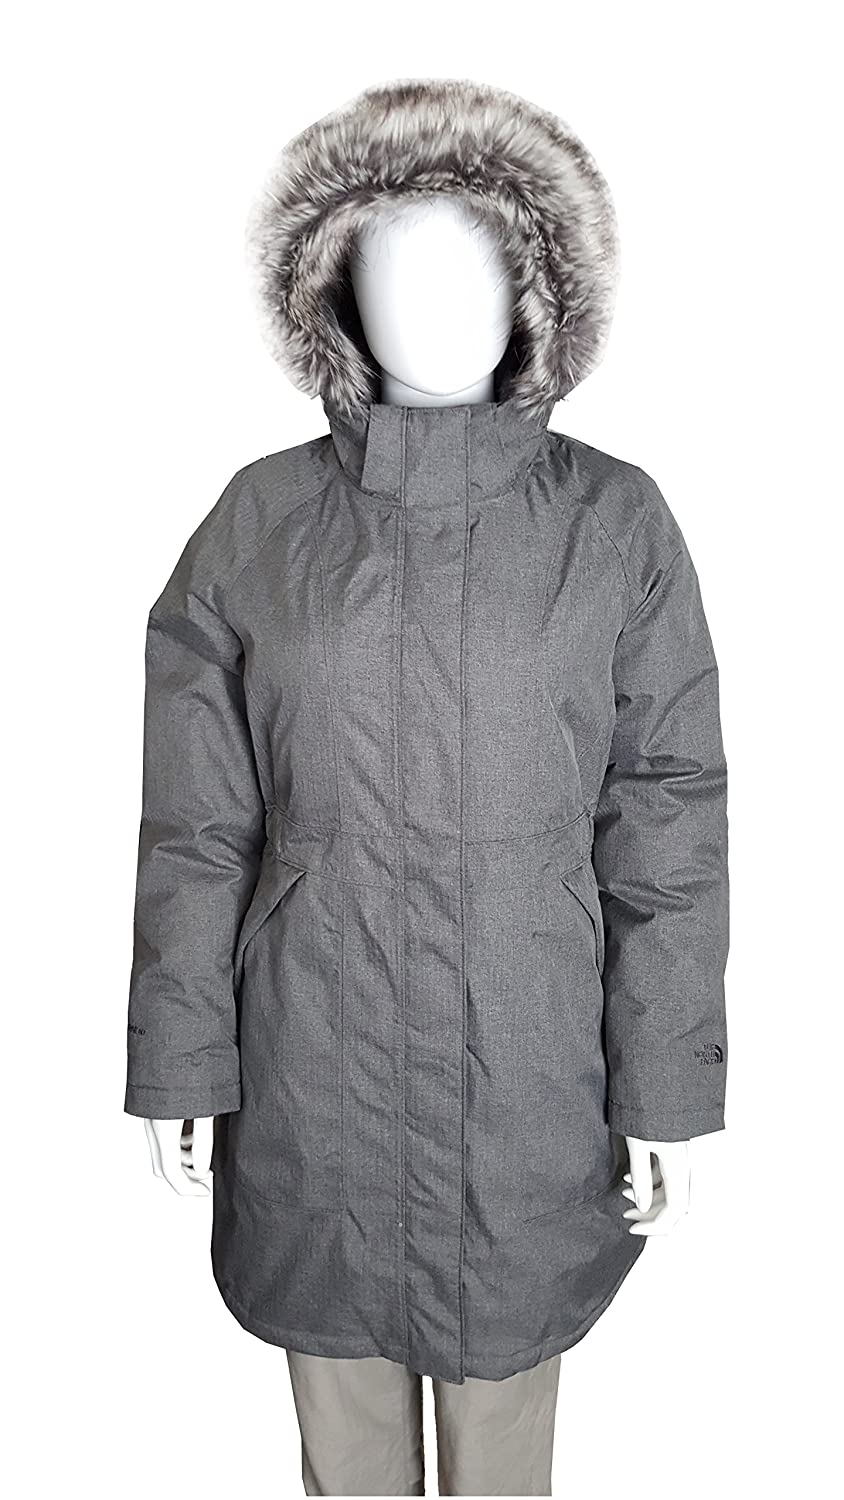 The North Face Arctic Parka レディース フード付き ロング ダウンコート B00PTUVW9Y X-Small|Graphite Grey Heather Graphite Grey Heather X-Small